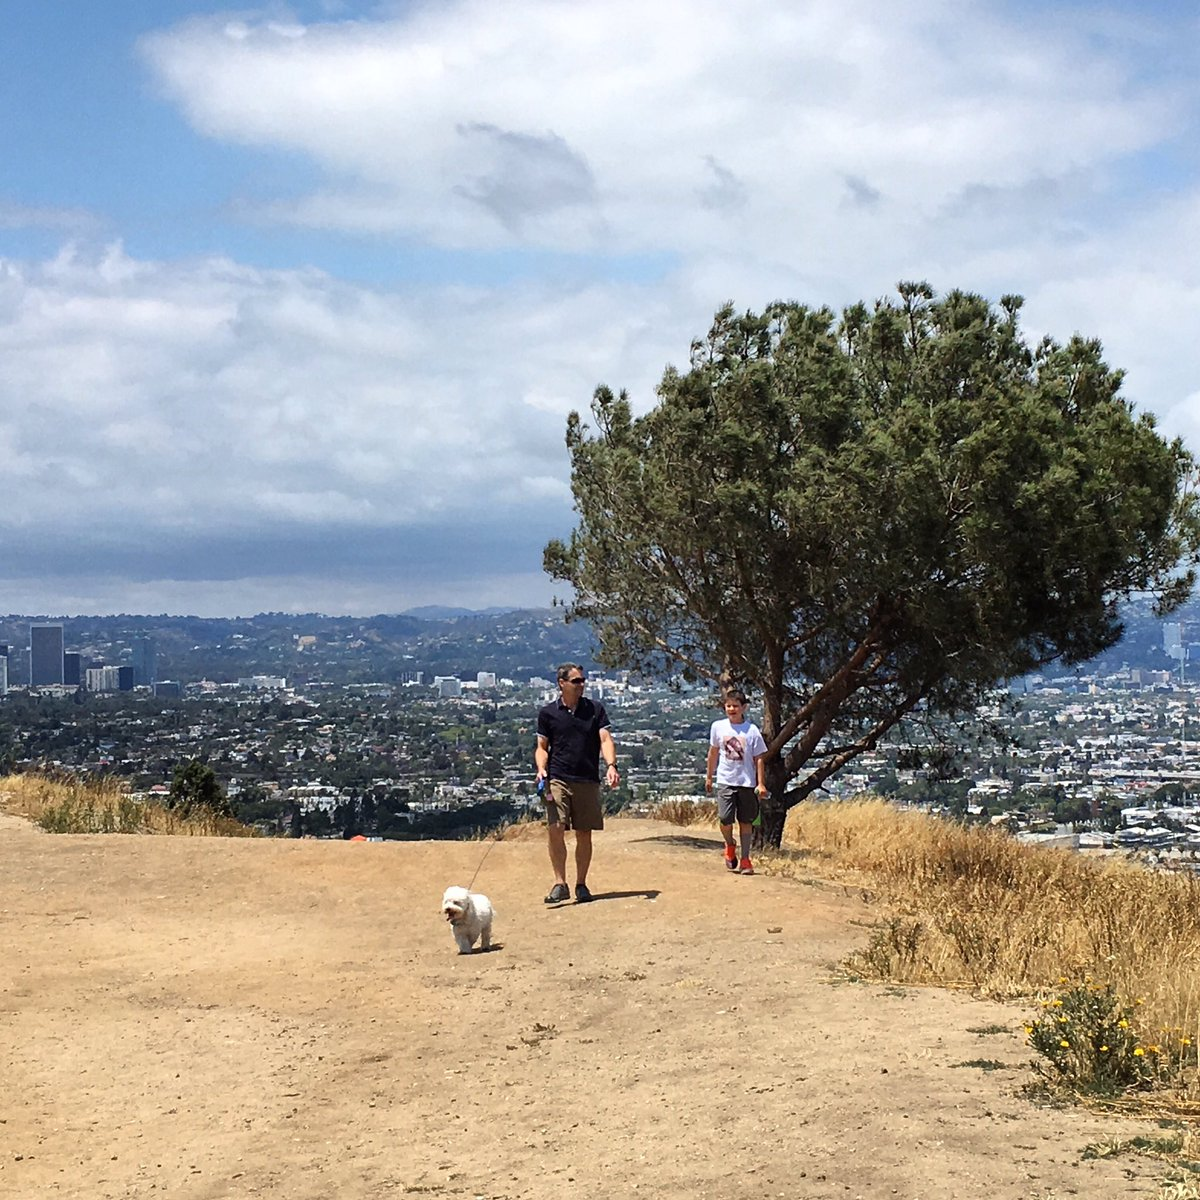 It's #NationalTrailsDay - hope you can get outside! #mydayinla https://t.co/wviD1VA72G